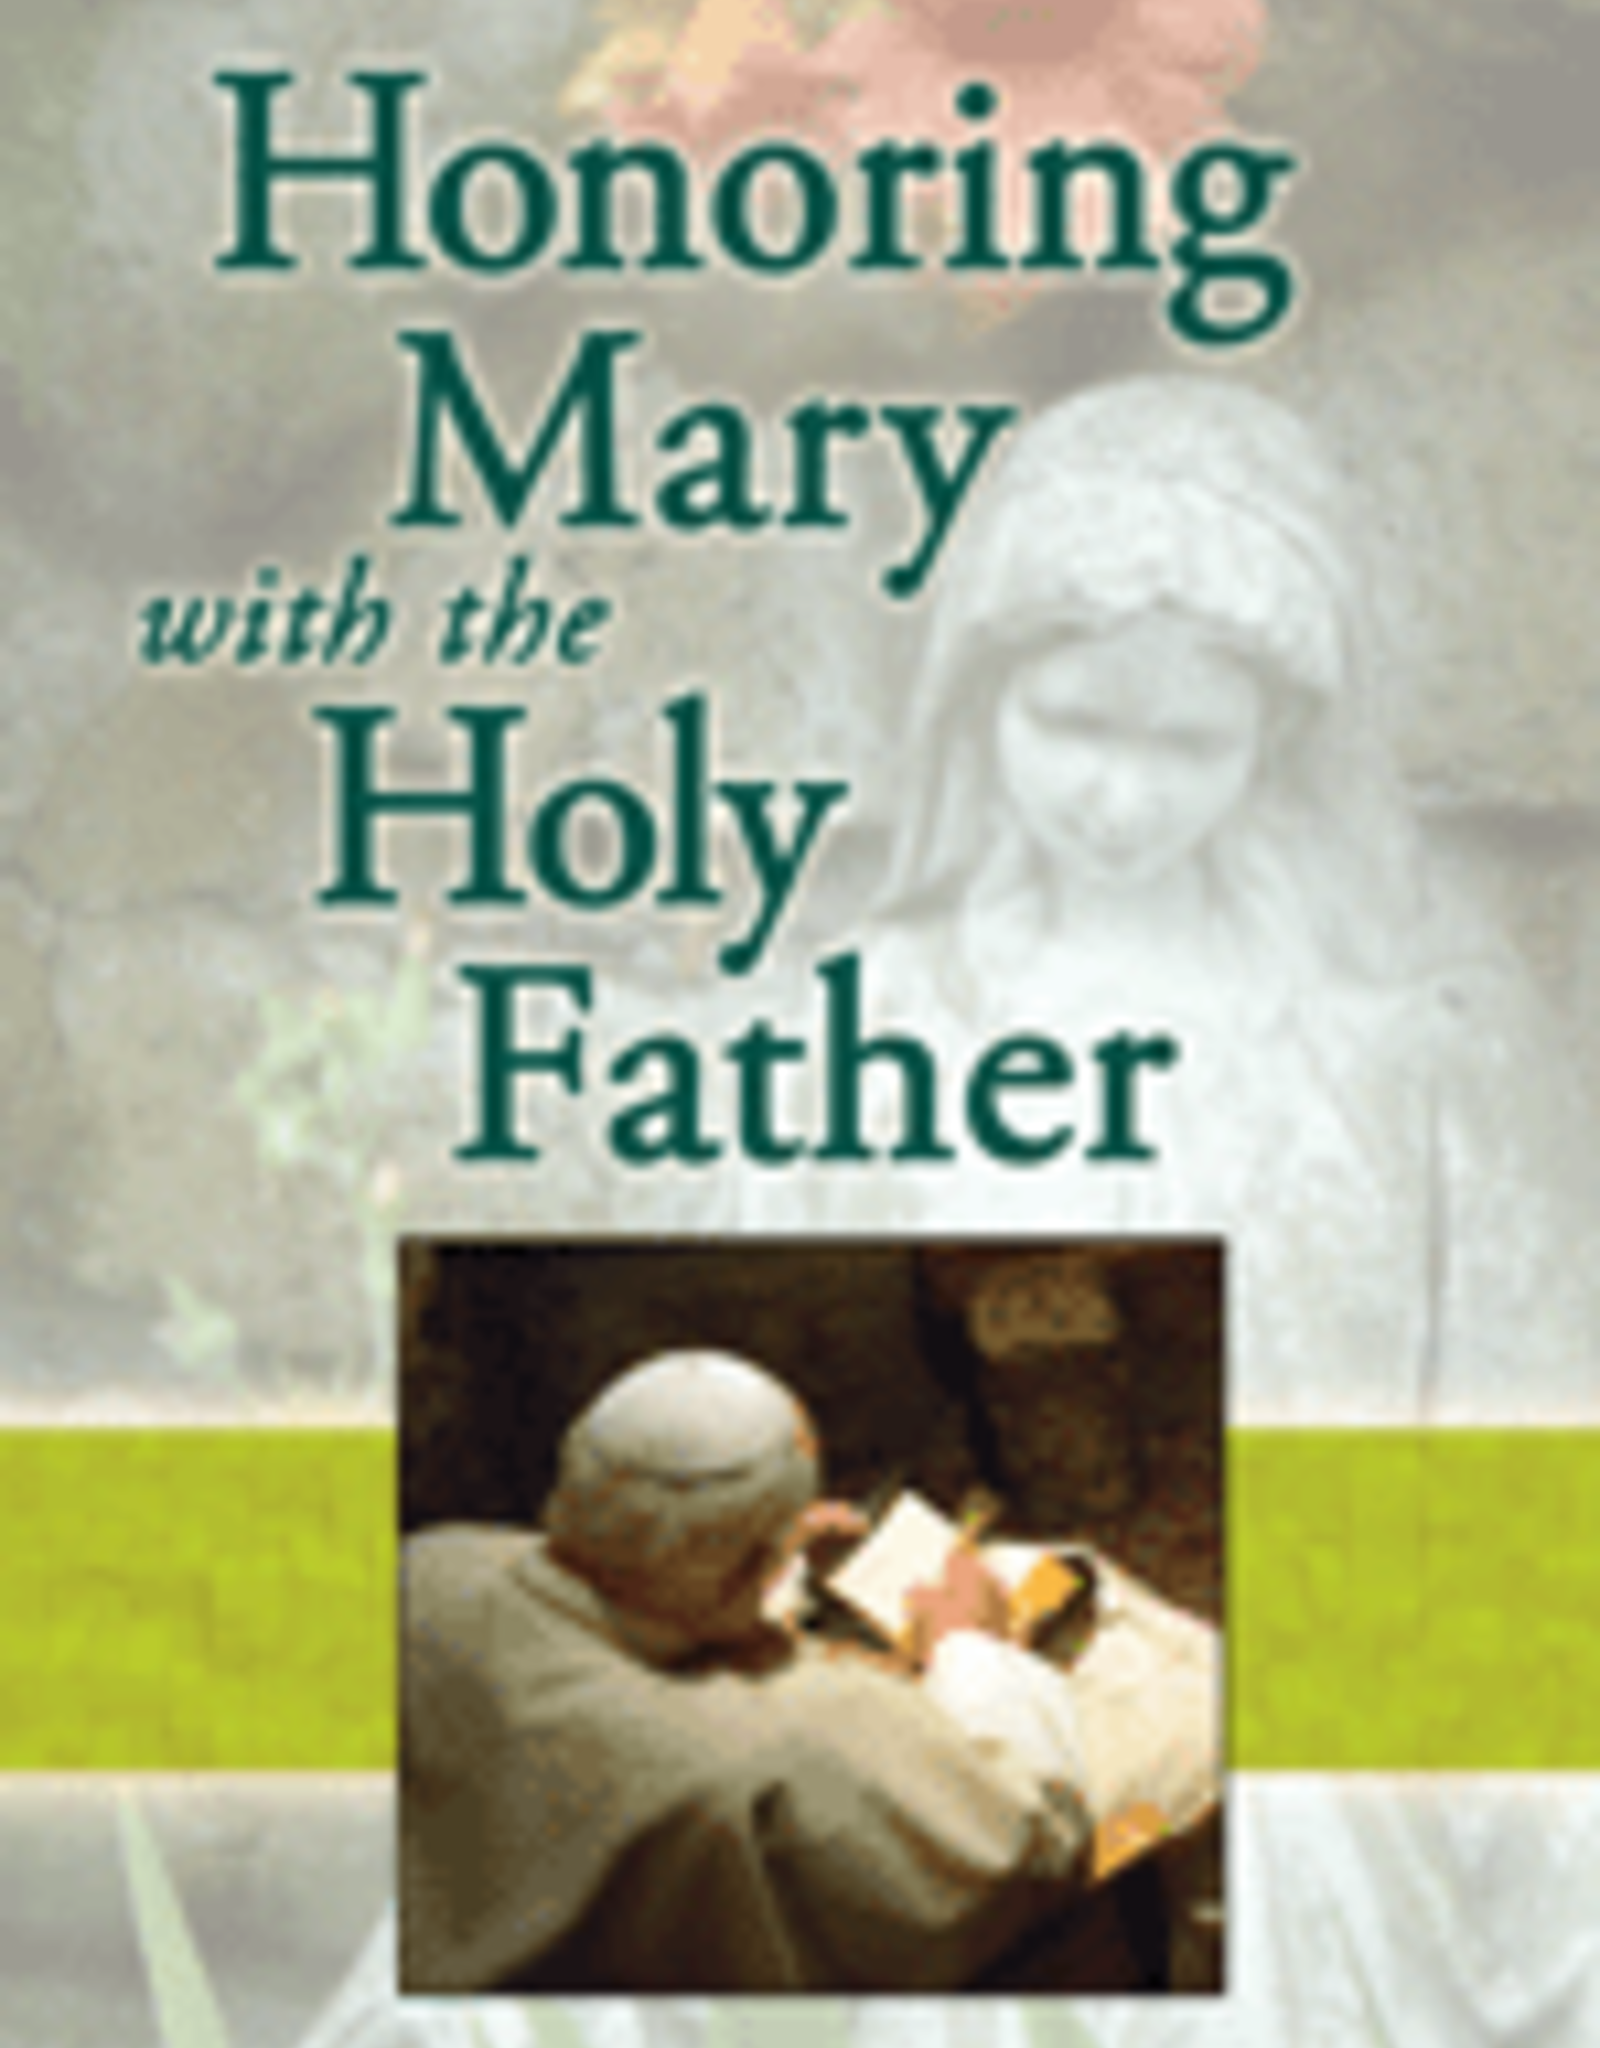 Pauline Honoring Mary with the Holy Father (paperback)